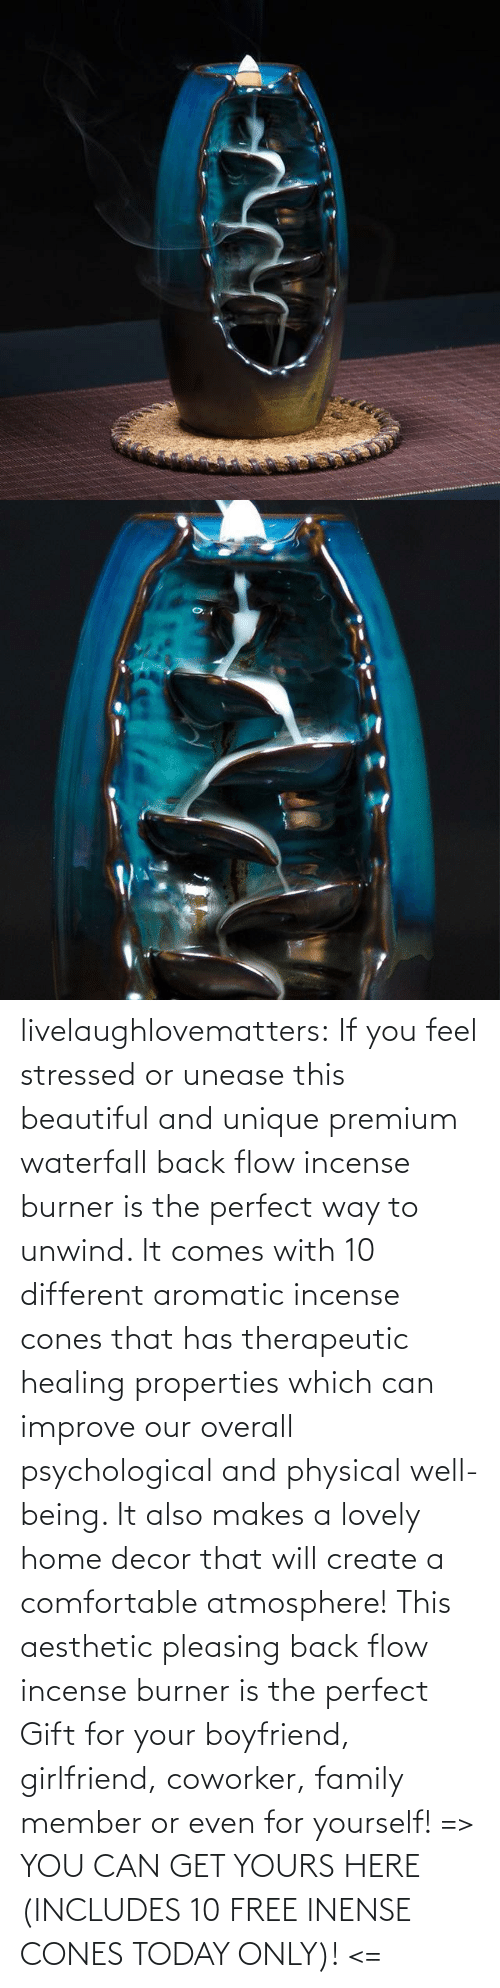 Girlfriend: livelaughlovematters: If you feel stressed or unease this beautiful and unique premium waterfall back flow incense burner is the perfect way to unwind. It comes with 10 different aromatic incense cones that has therapeutic healing properties which can improve our overall psychological and physical well-being. It also makes a lovely home decor that will create a comfortable atmosphere! This aesthetic pleasing back flow incense burner is the perfect Gift for your boyfriend, girlfriend, coworker, family member or even for yourself! => YOU CAN GET YOURS HERE (INCLUDES 10 FREE INENSE CONES TODAY ONLY)! <=